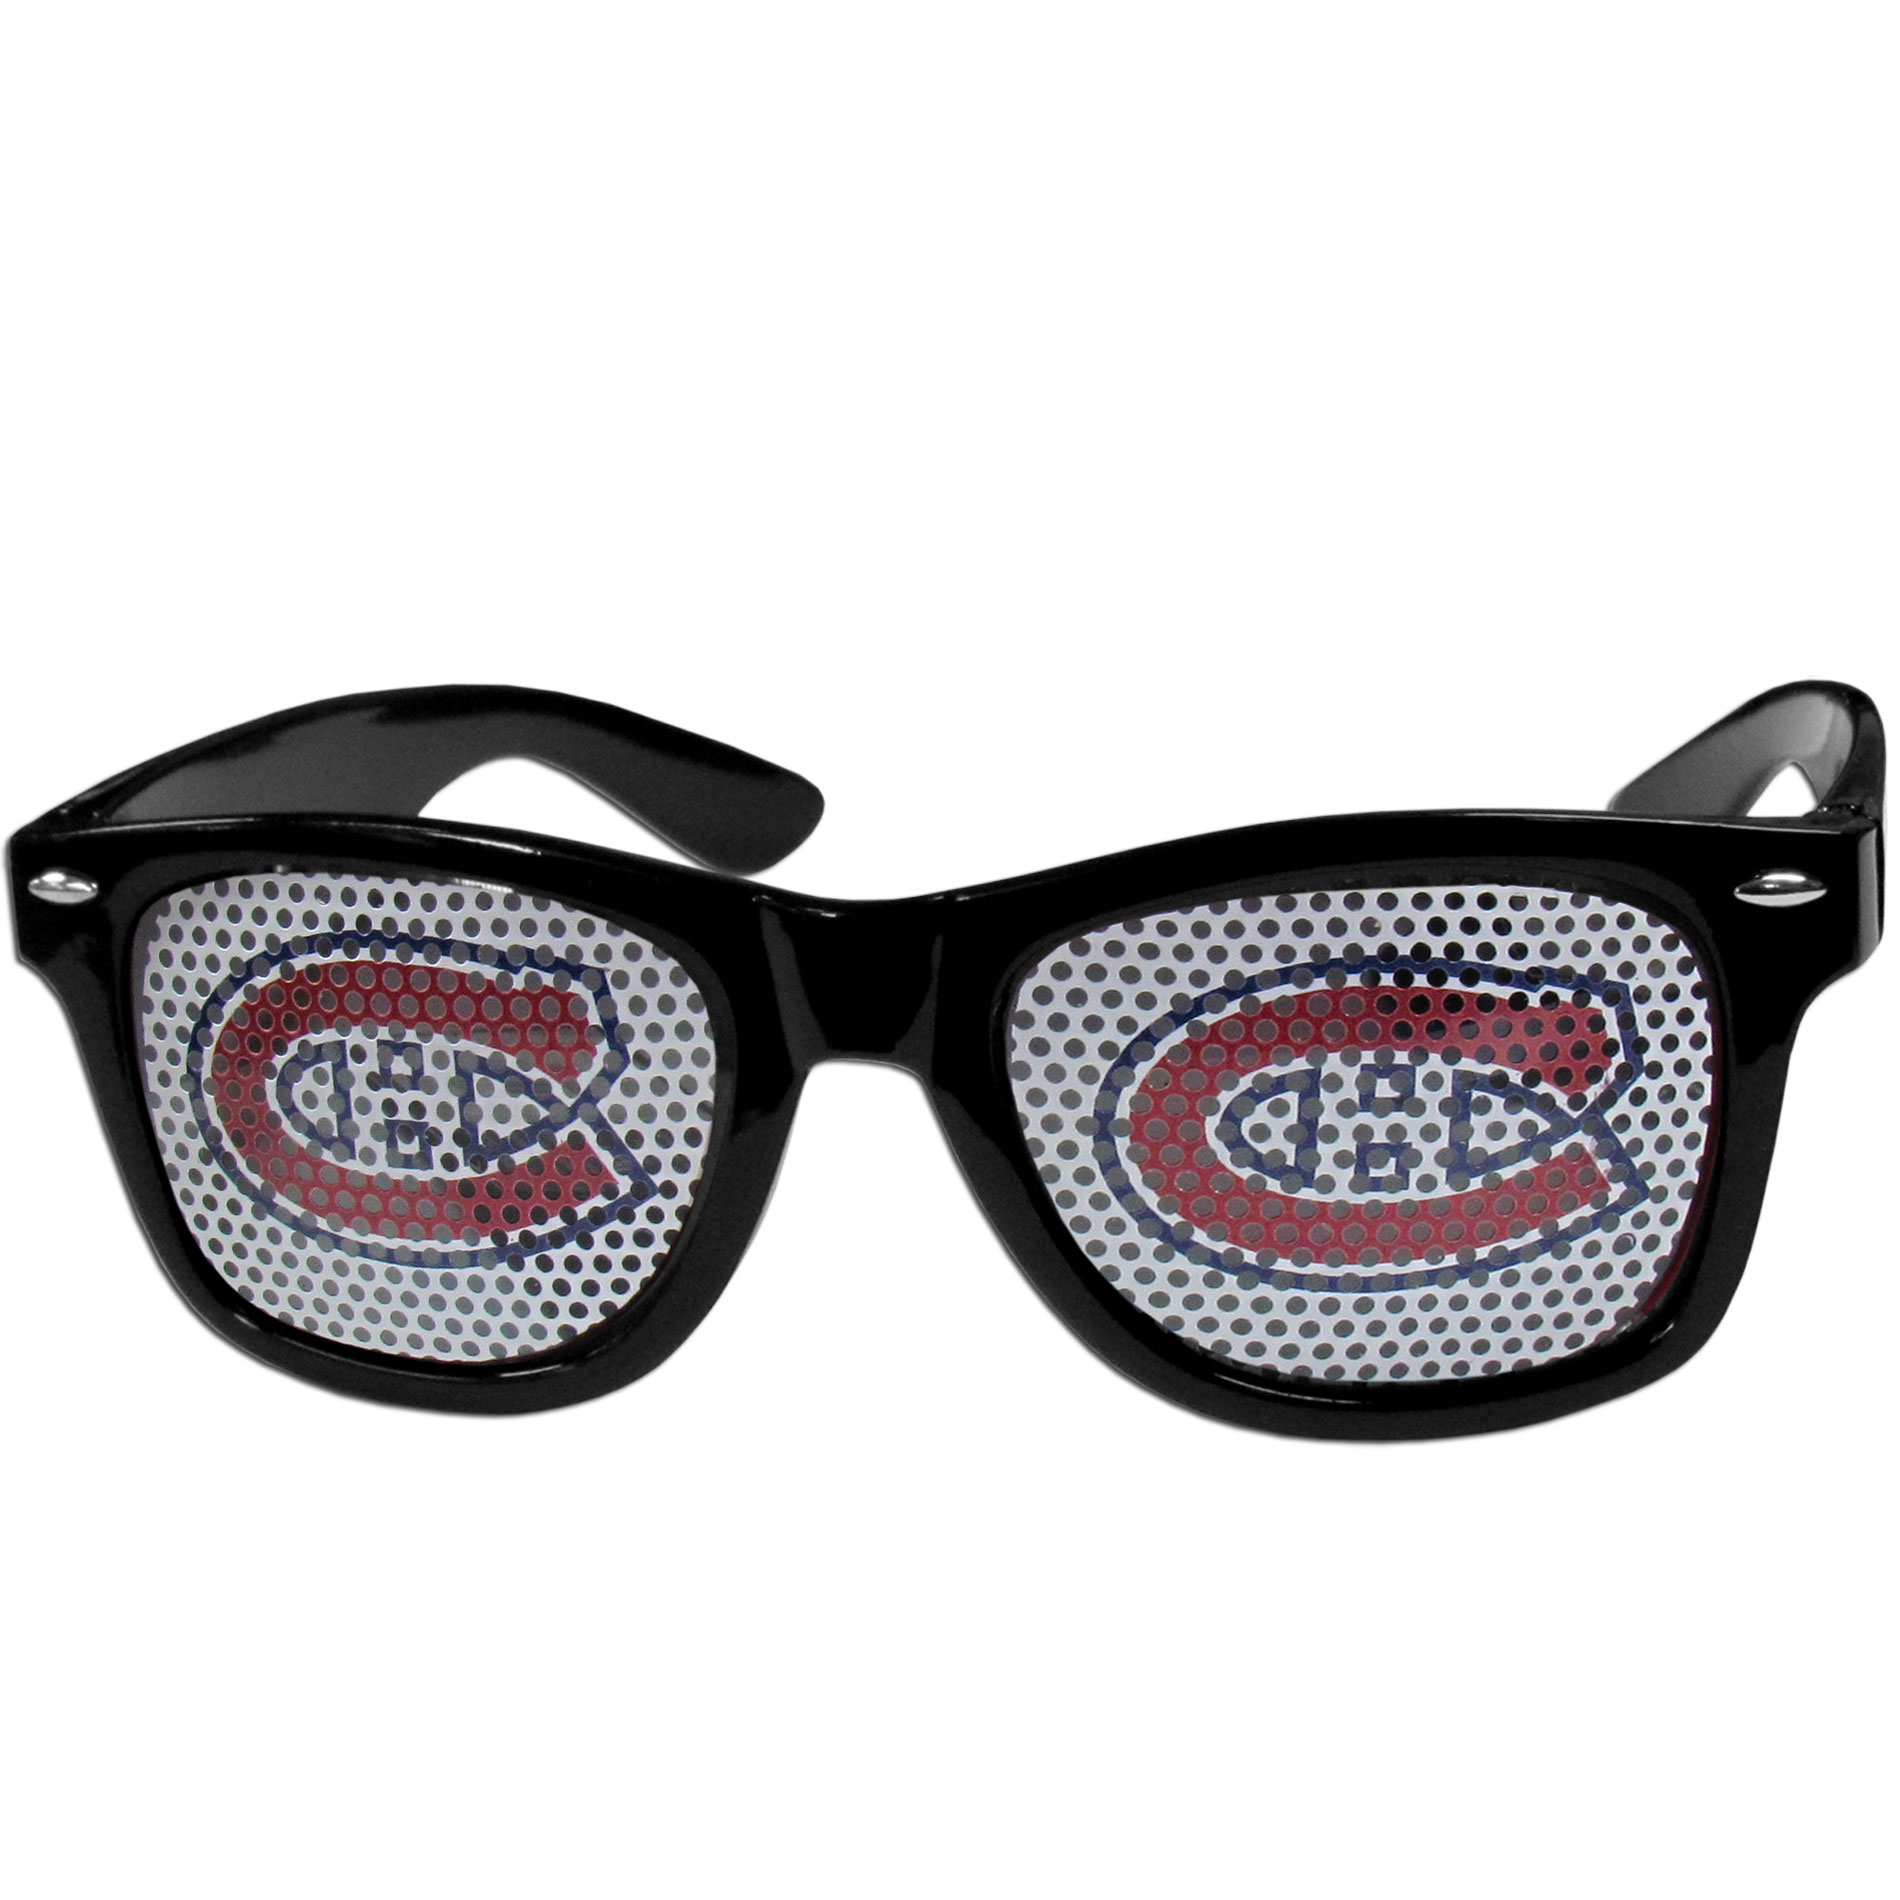 Montreal Canadiens Game Day Shades - Officially licensed Montreal Canadiens game day shades are the perfect accessory for the devoted Montreal Canadiens fan! The Montreal Canadiens game day shades have durable polycarbonate frames with flex hinges for comfort and damage resistance. The lenses feature brightly colored Montreal Canadiens clings that are perforated for visibility.